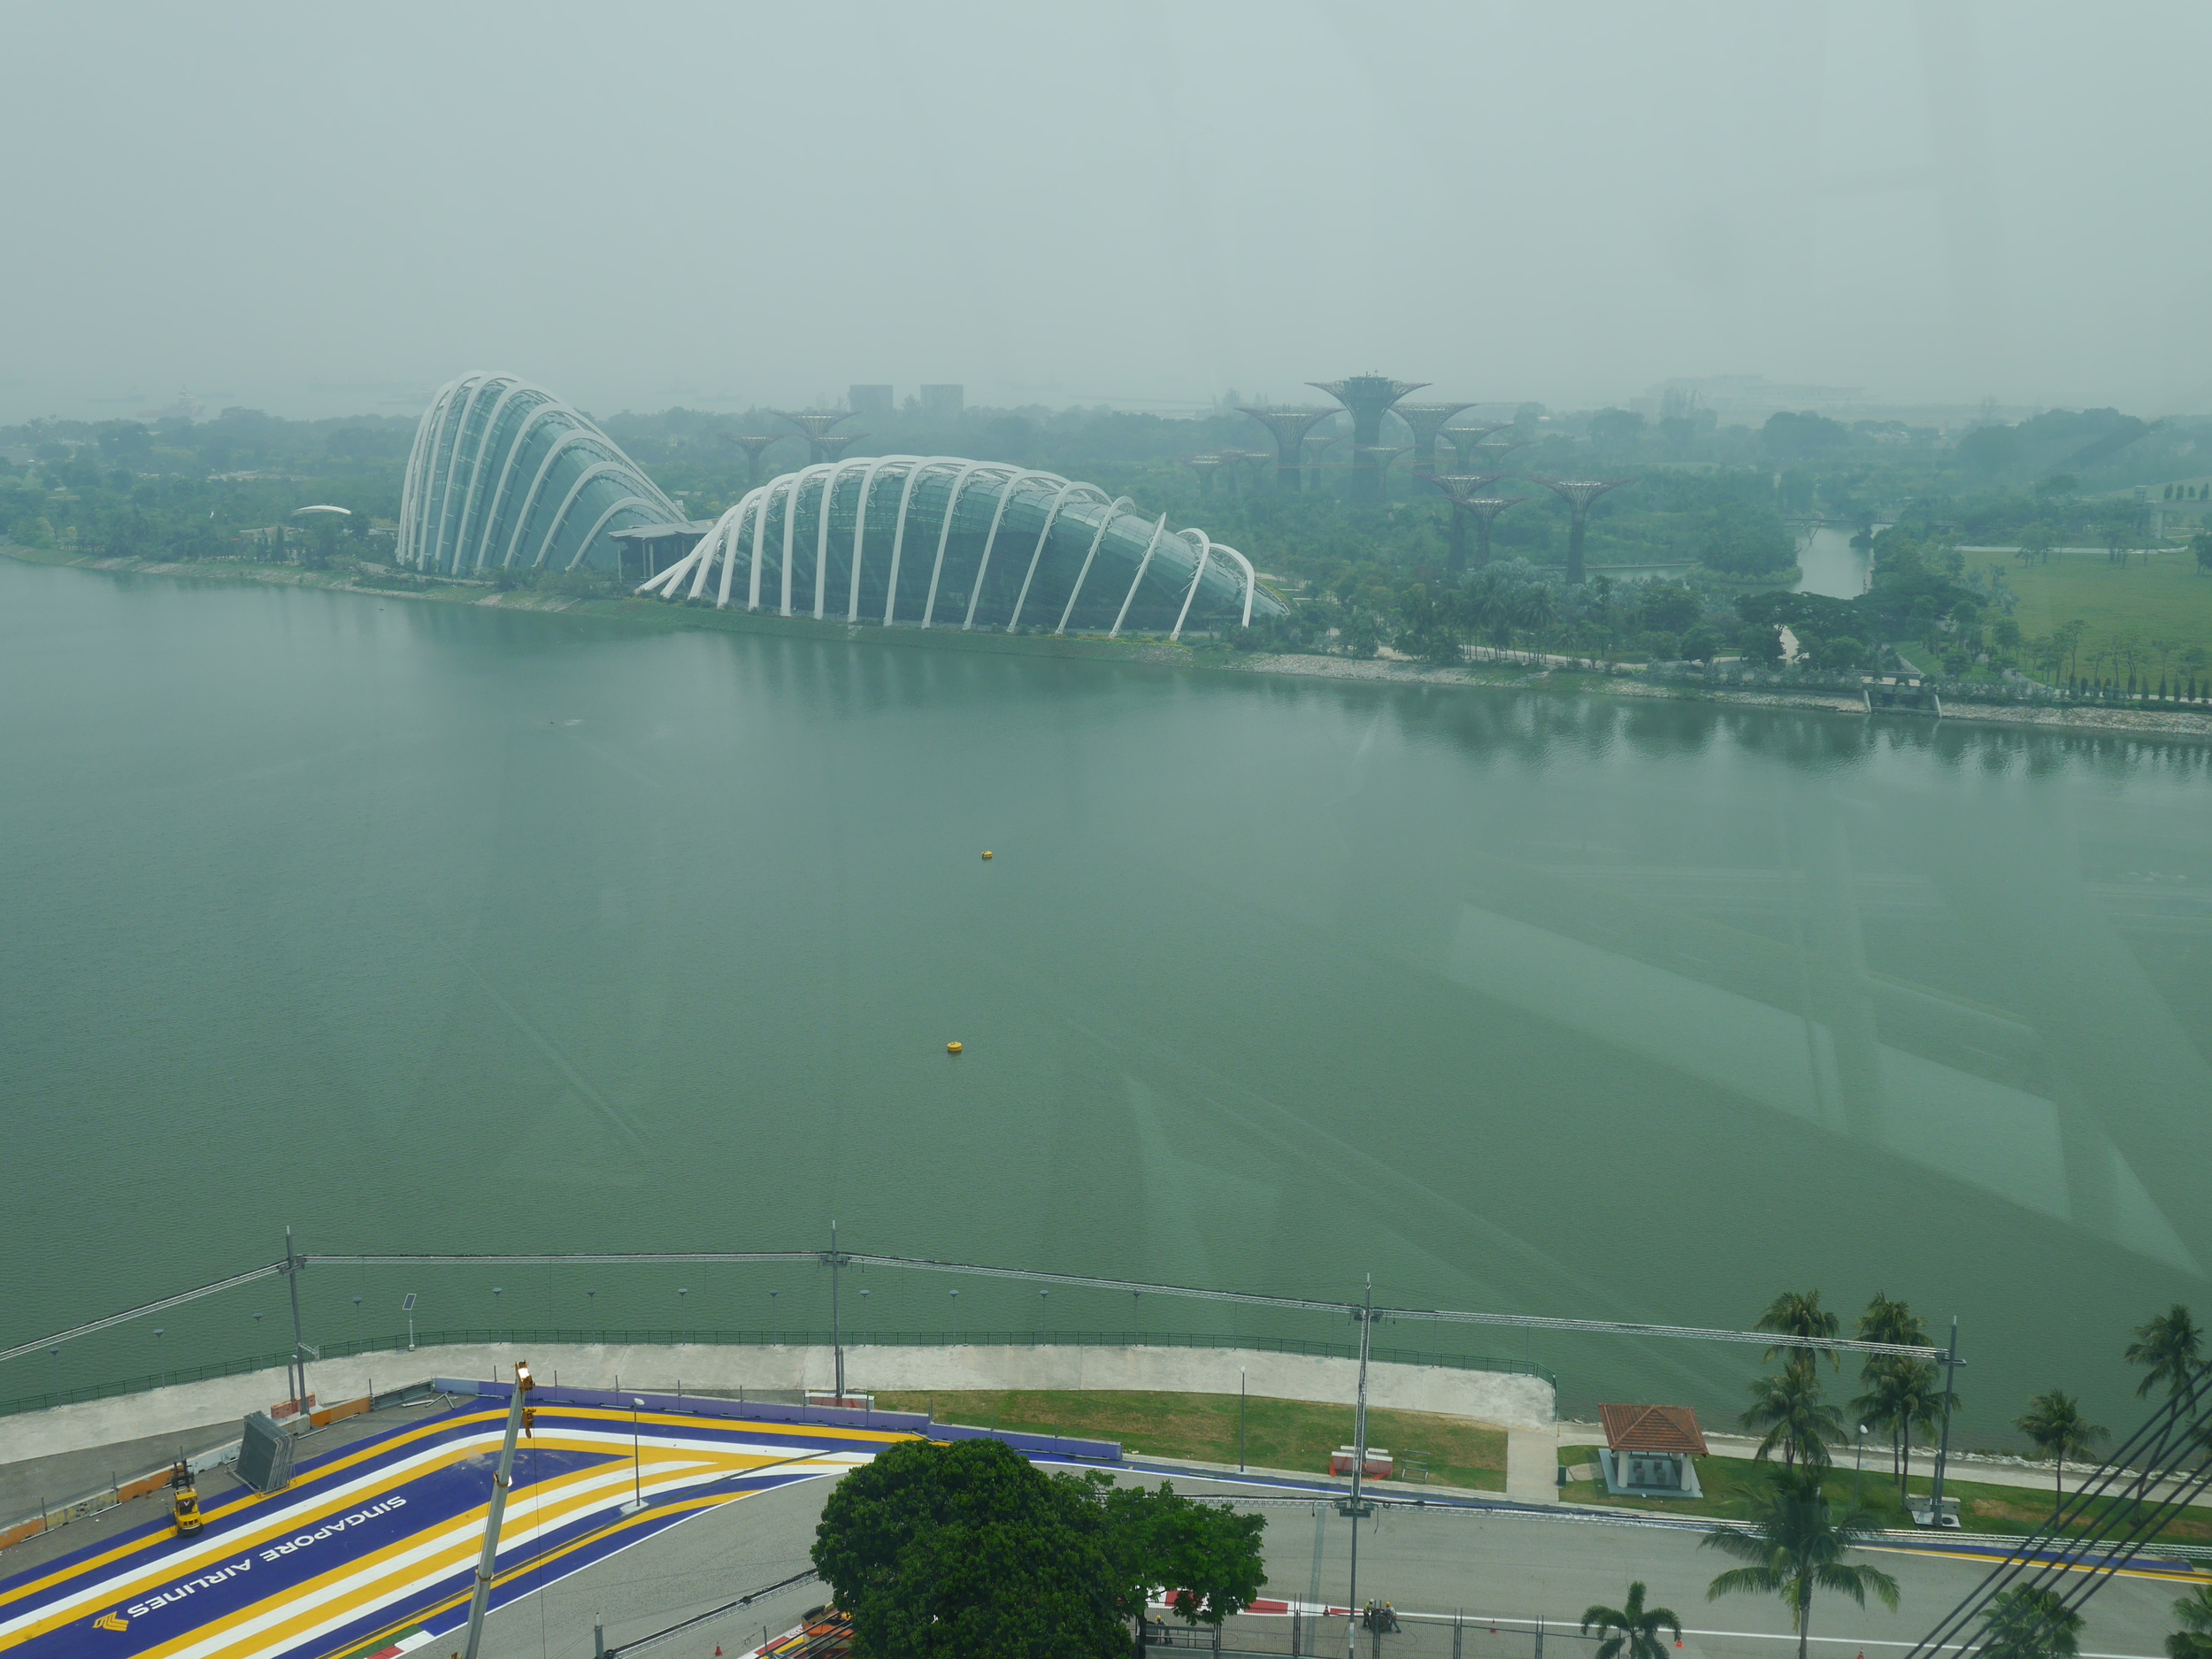 A corner on the Singapore F1 track, with the Gardens by the Bay in the background.